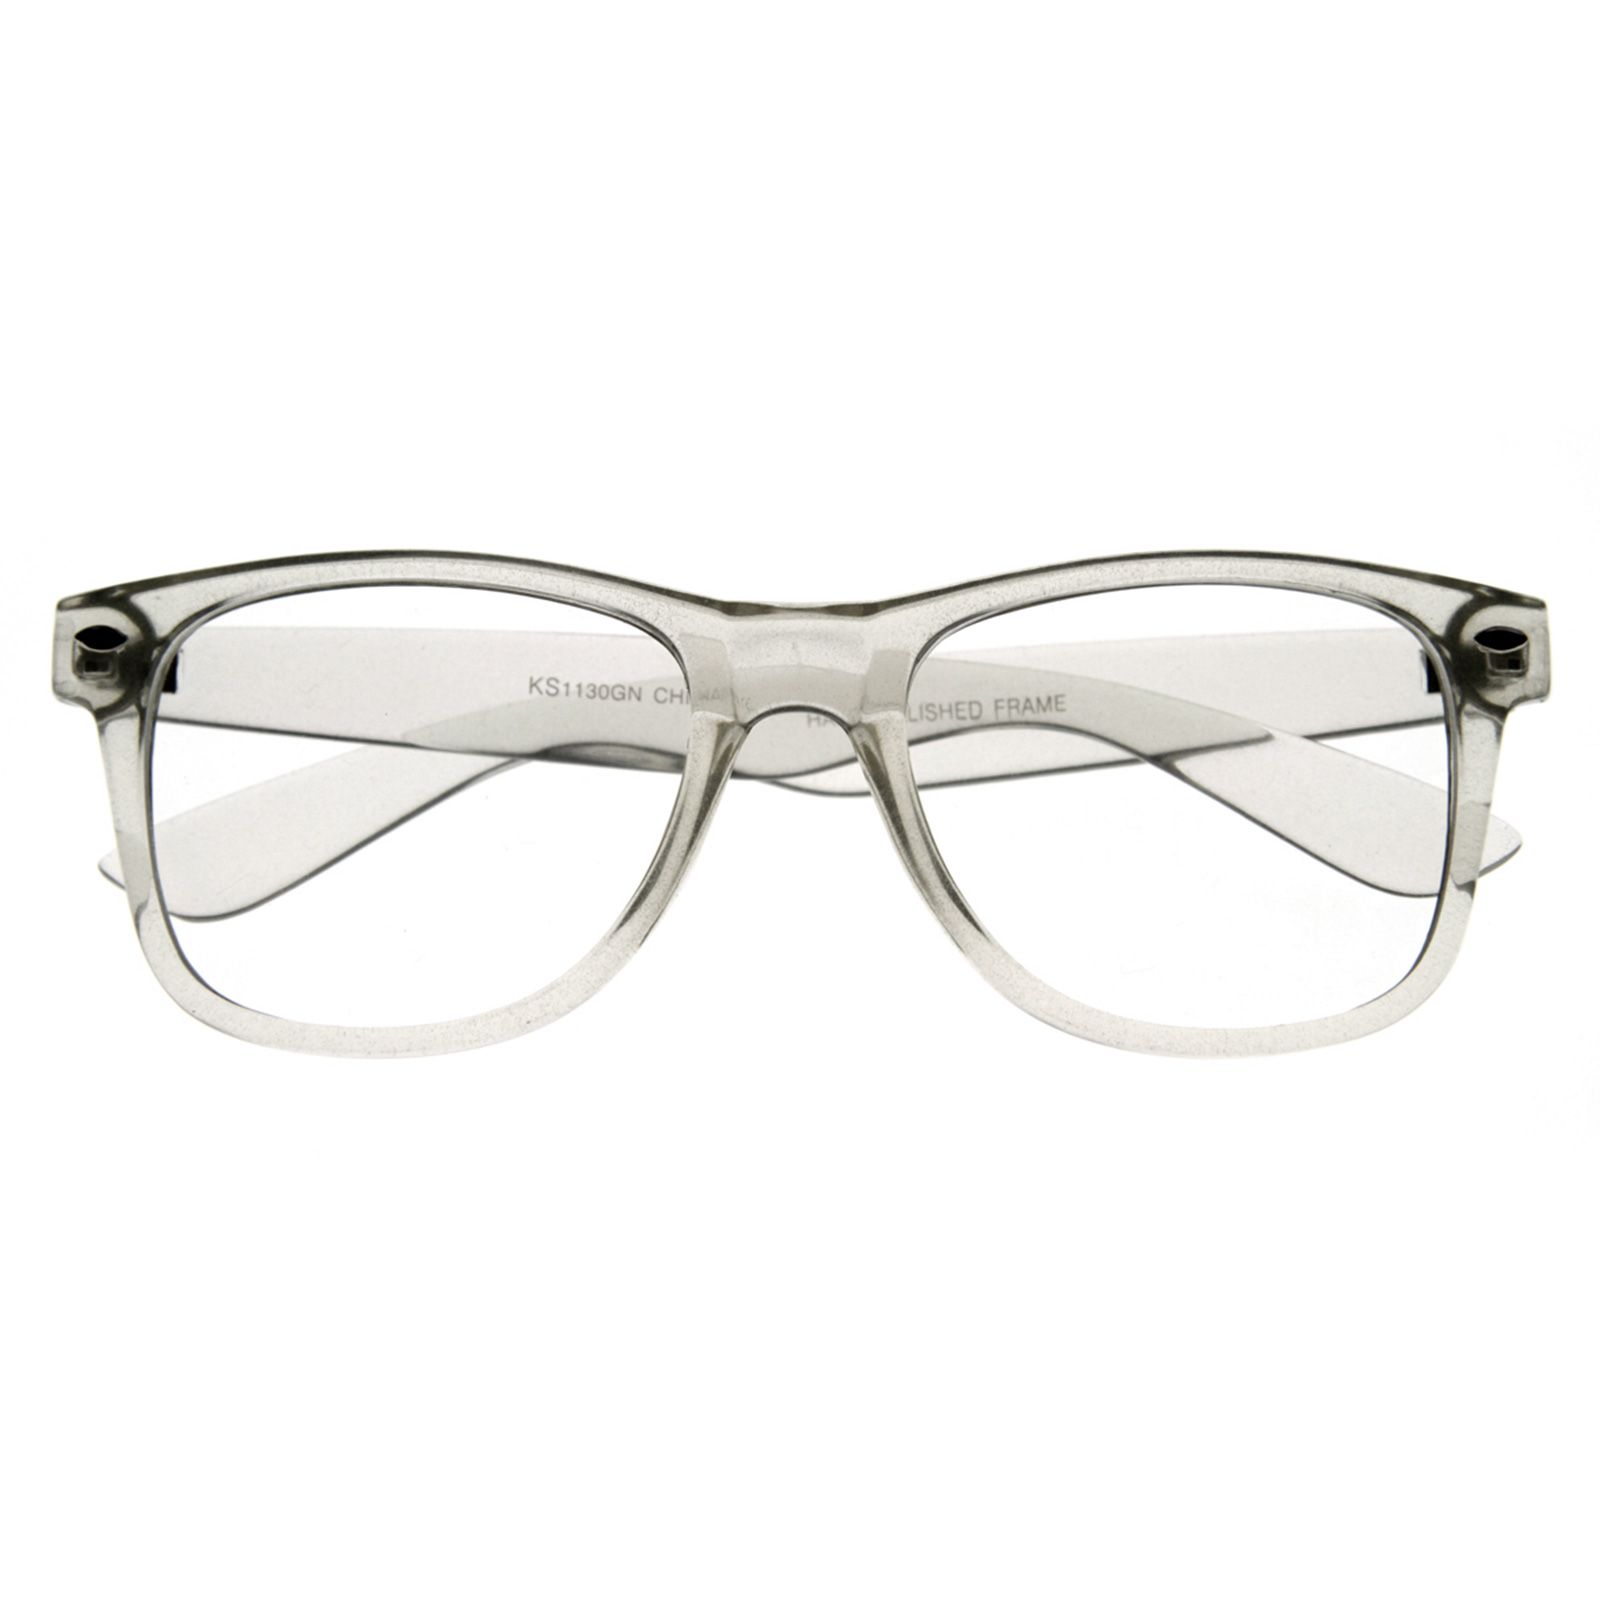 Clear rimmed glasses will put the attention on you, and not your eyewear. Clear frames on sunglasses or transparent glasses frames are both good choices if you like to be different from the crowd. If you are looking for clear LENS glasses, or clear fashion glasses without a prescription, please contact one of our expert opticians and we can put.